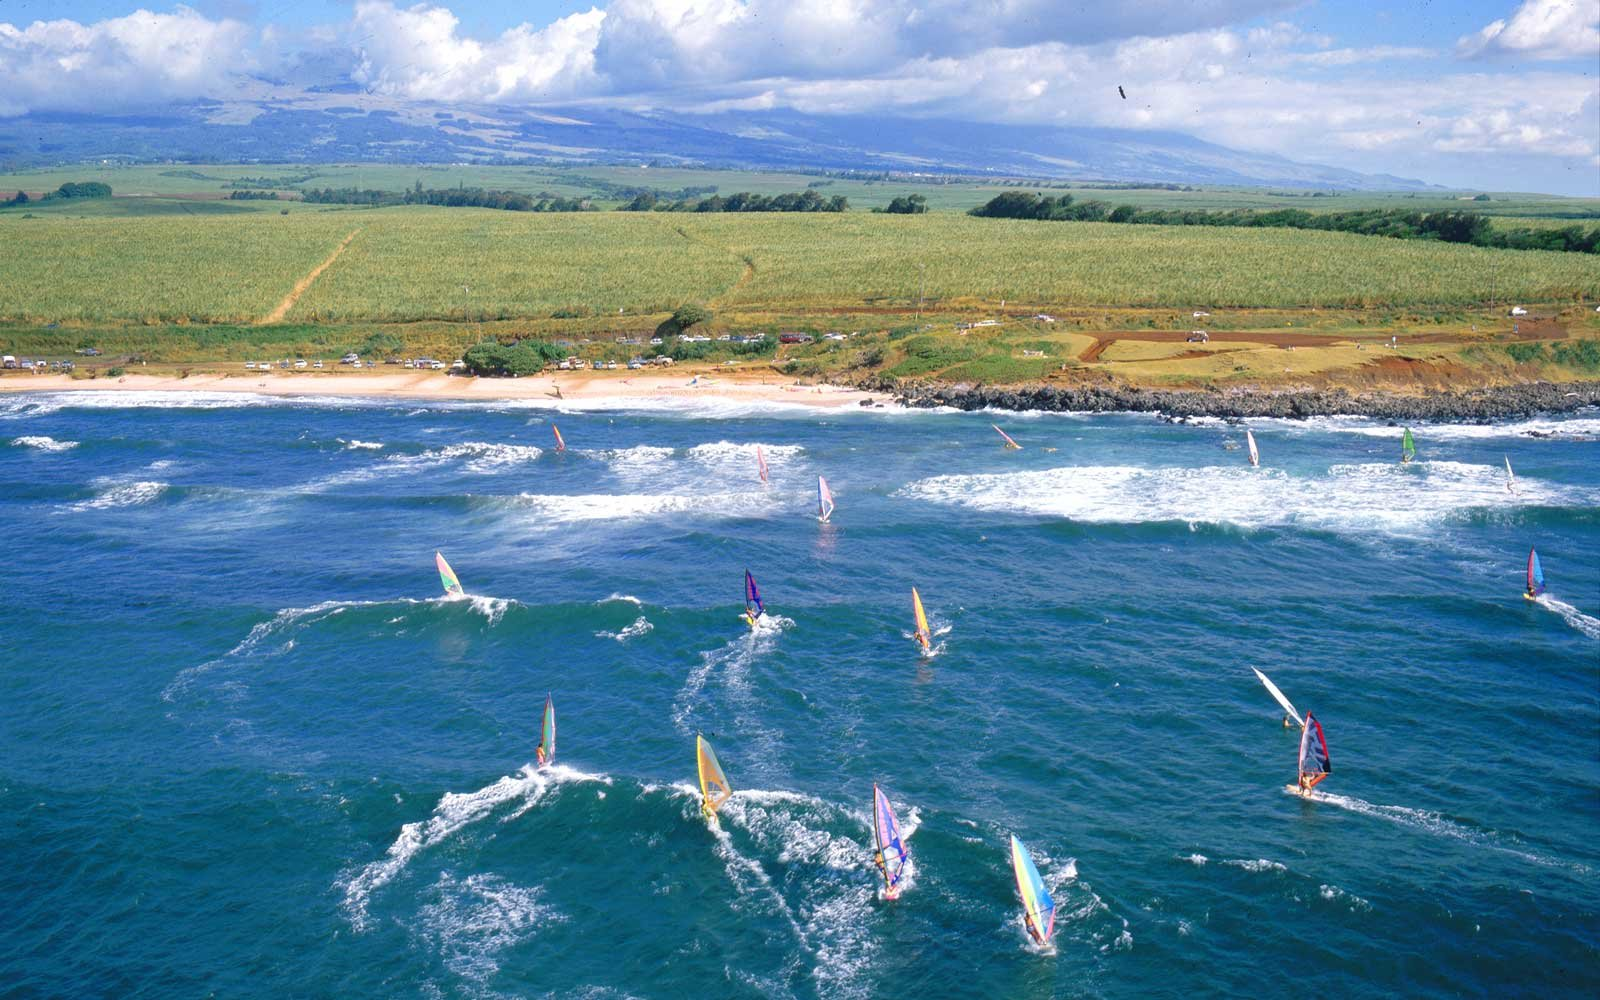 Windsurfing at Maui's Ho'okipa Beach